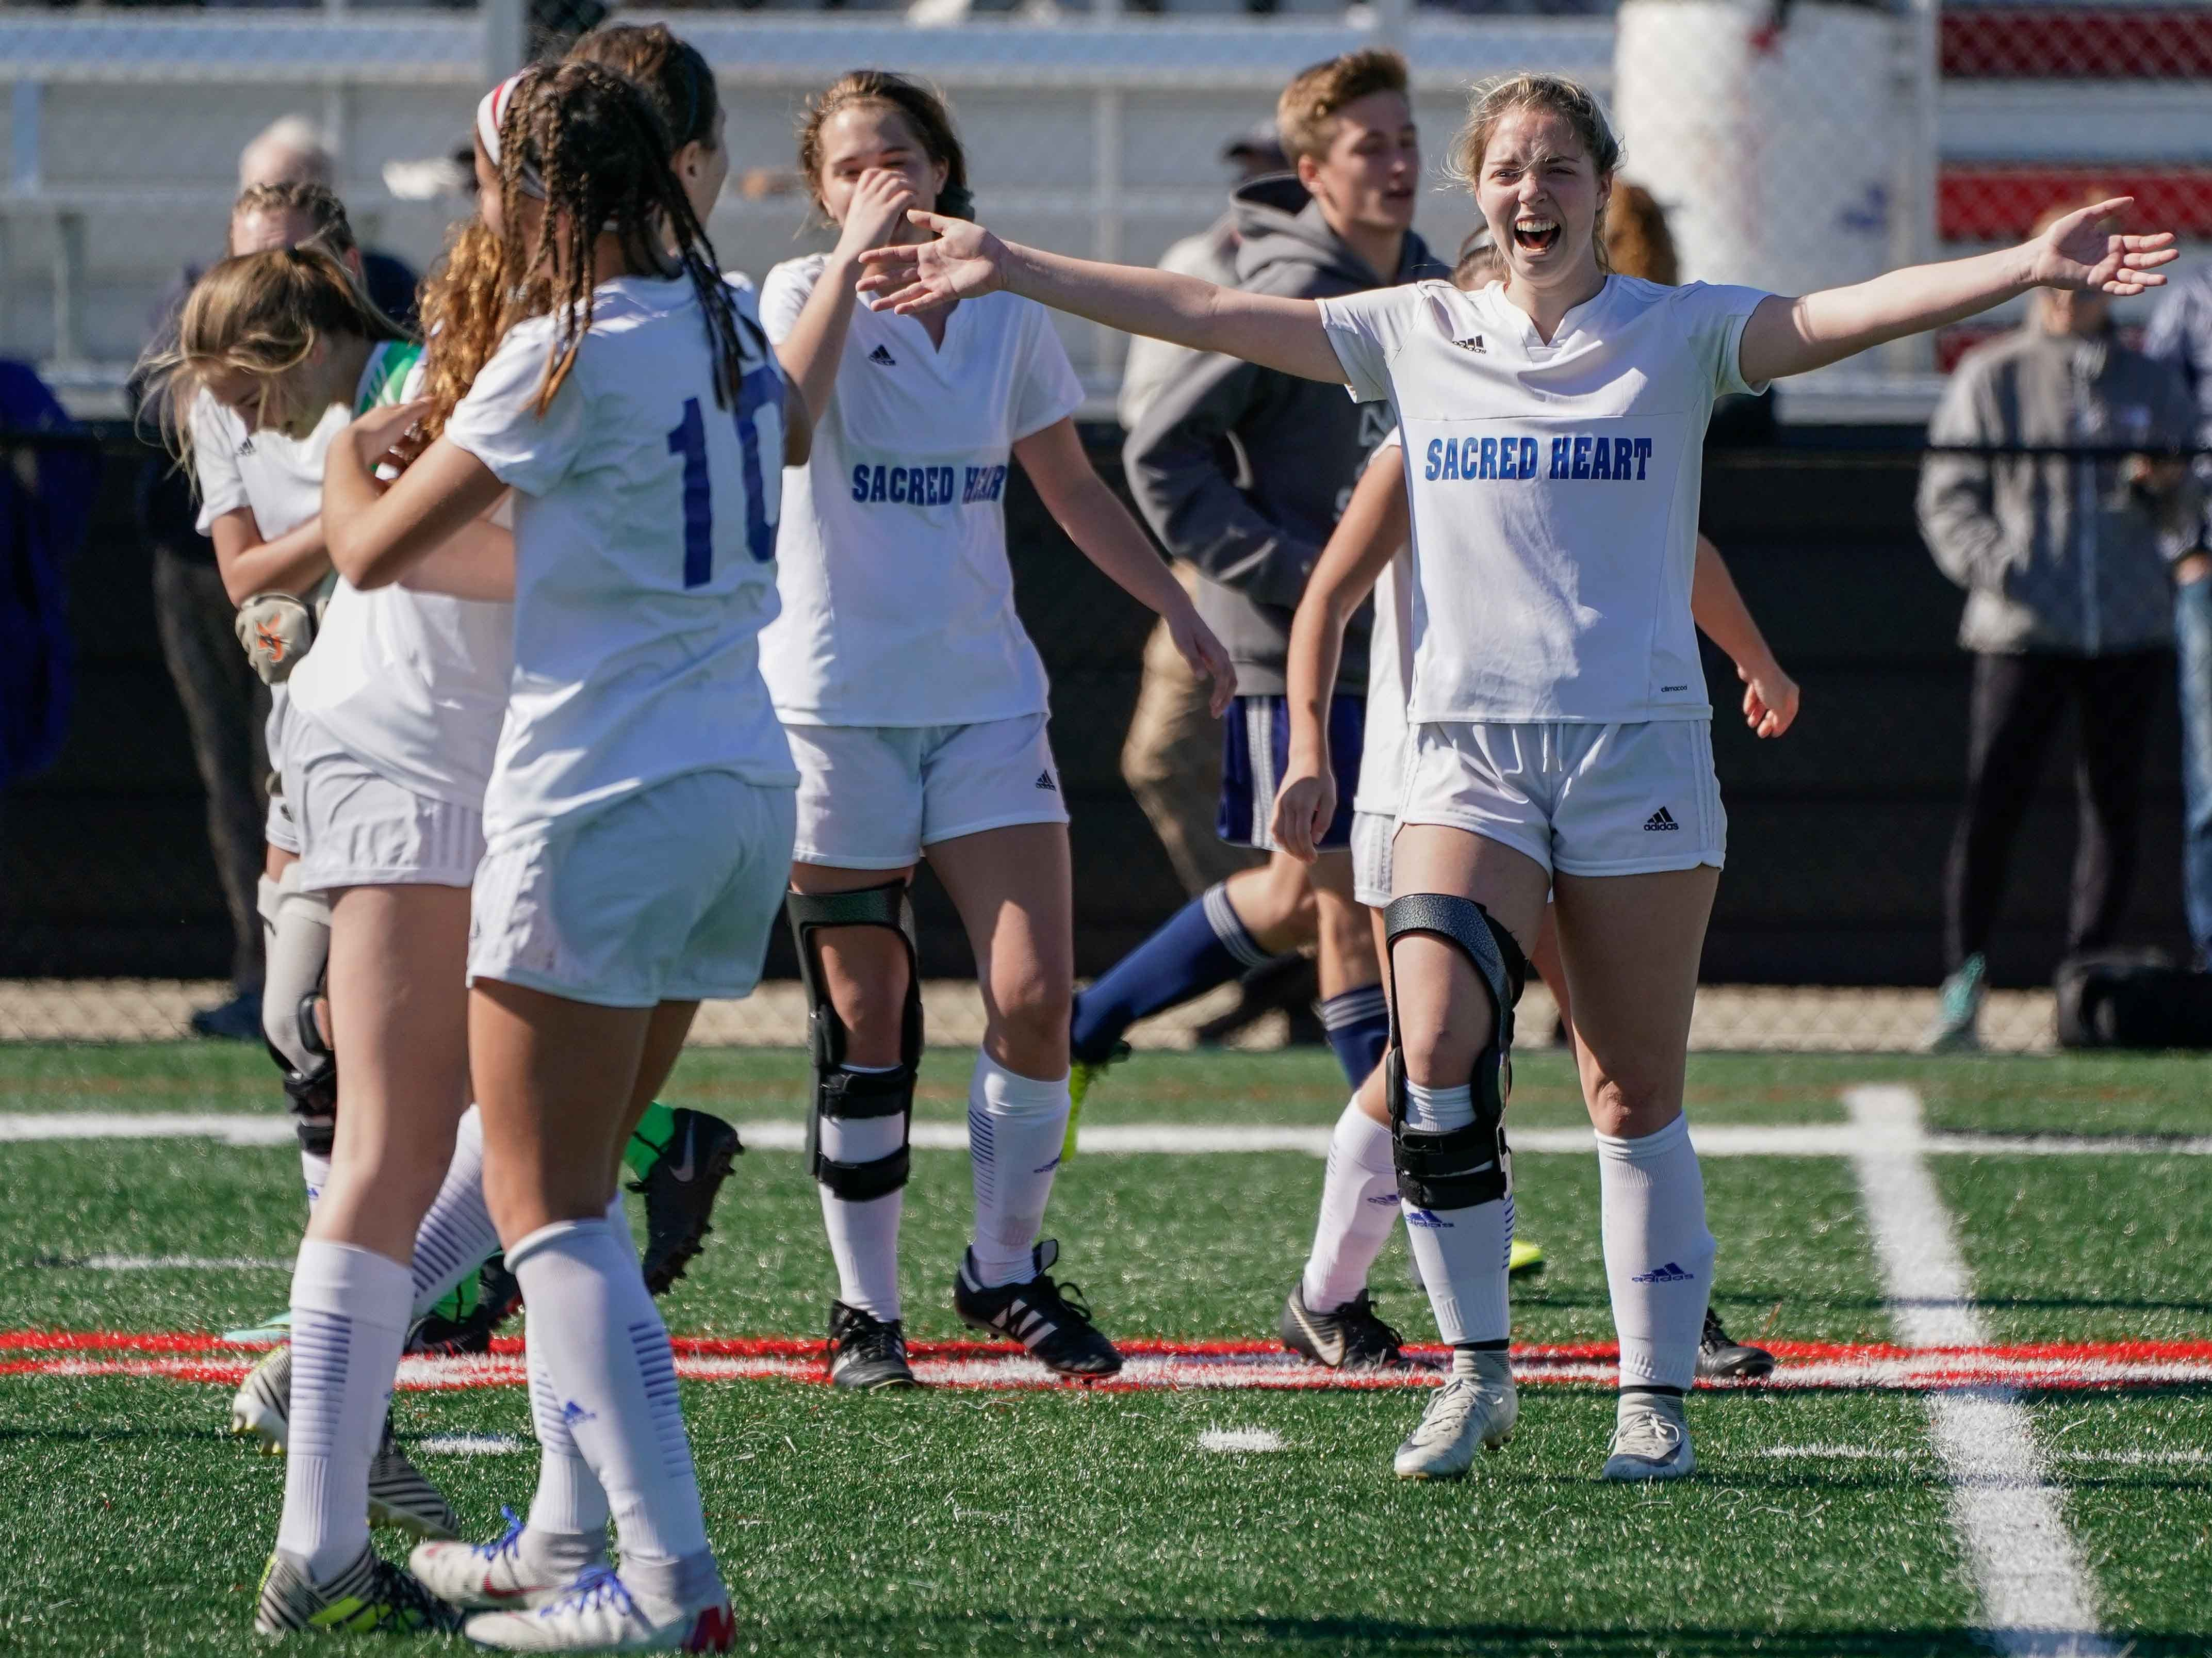 Sacred Hear girls celbrate following their 2-0 win in the MHSAA 1A,2A,3A  GIrls Soccer Championships held at Brandon High School in Brandon, MS, Saturday February 9, 2019.(Bob Smith-For The Clarion Ledger)